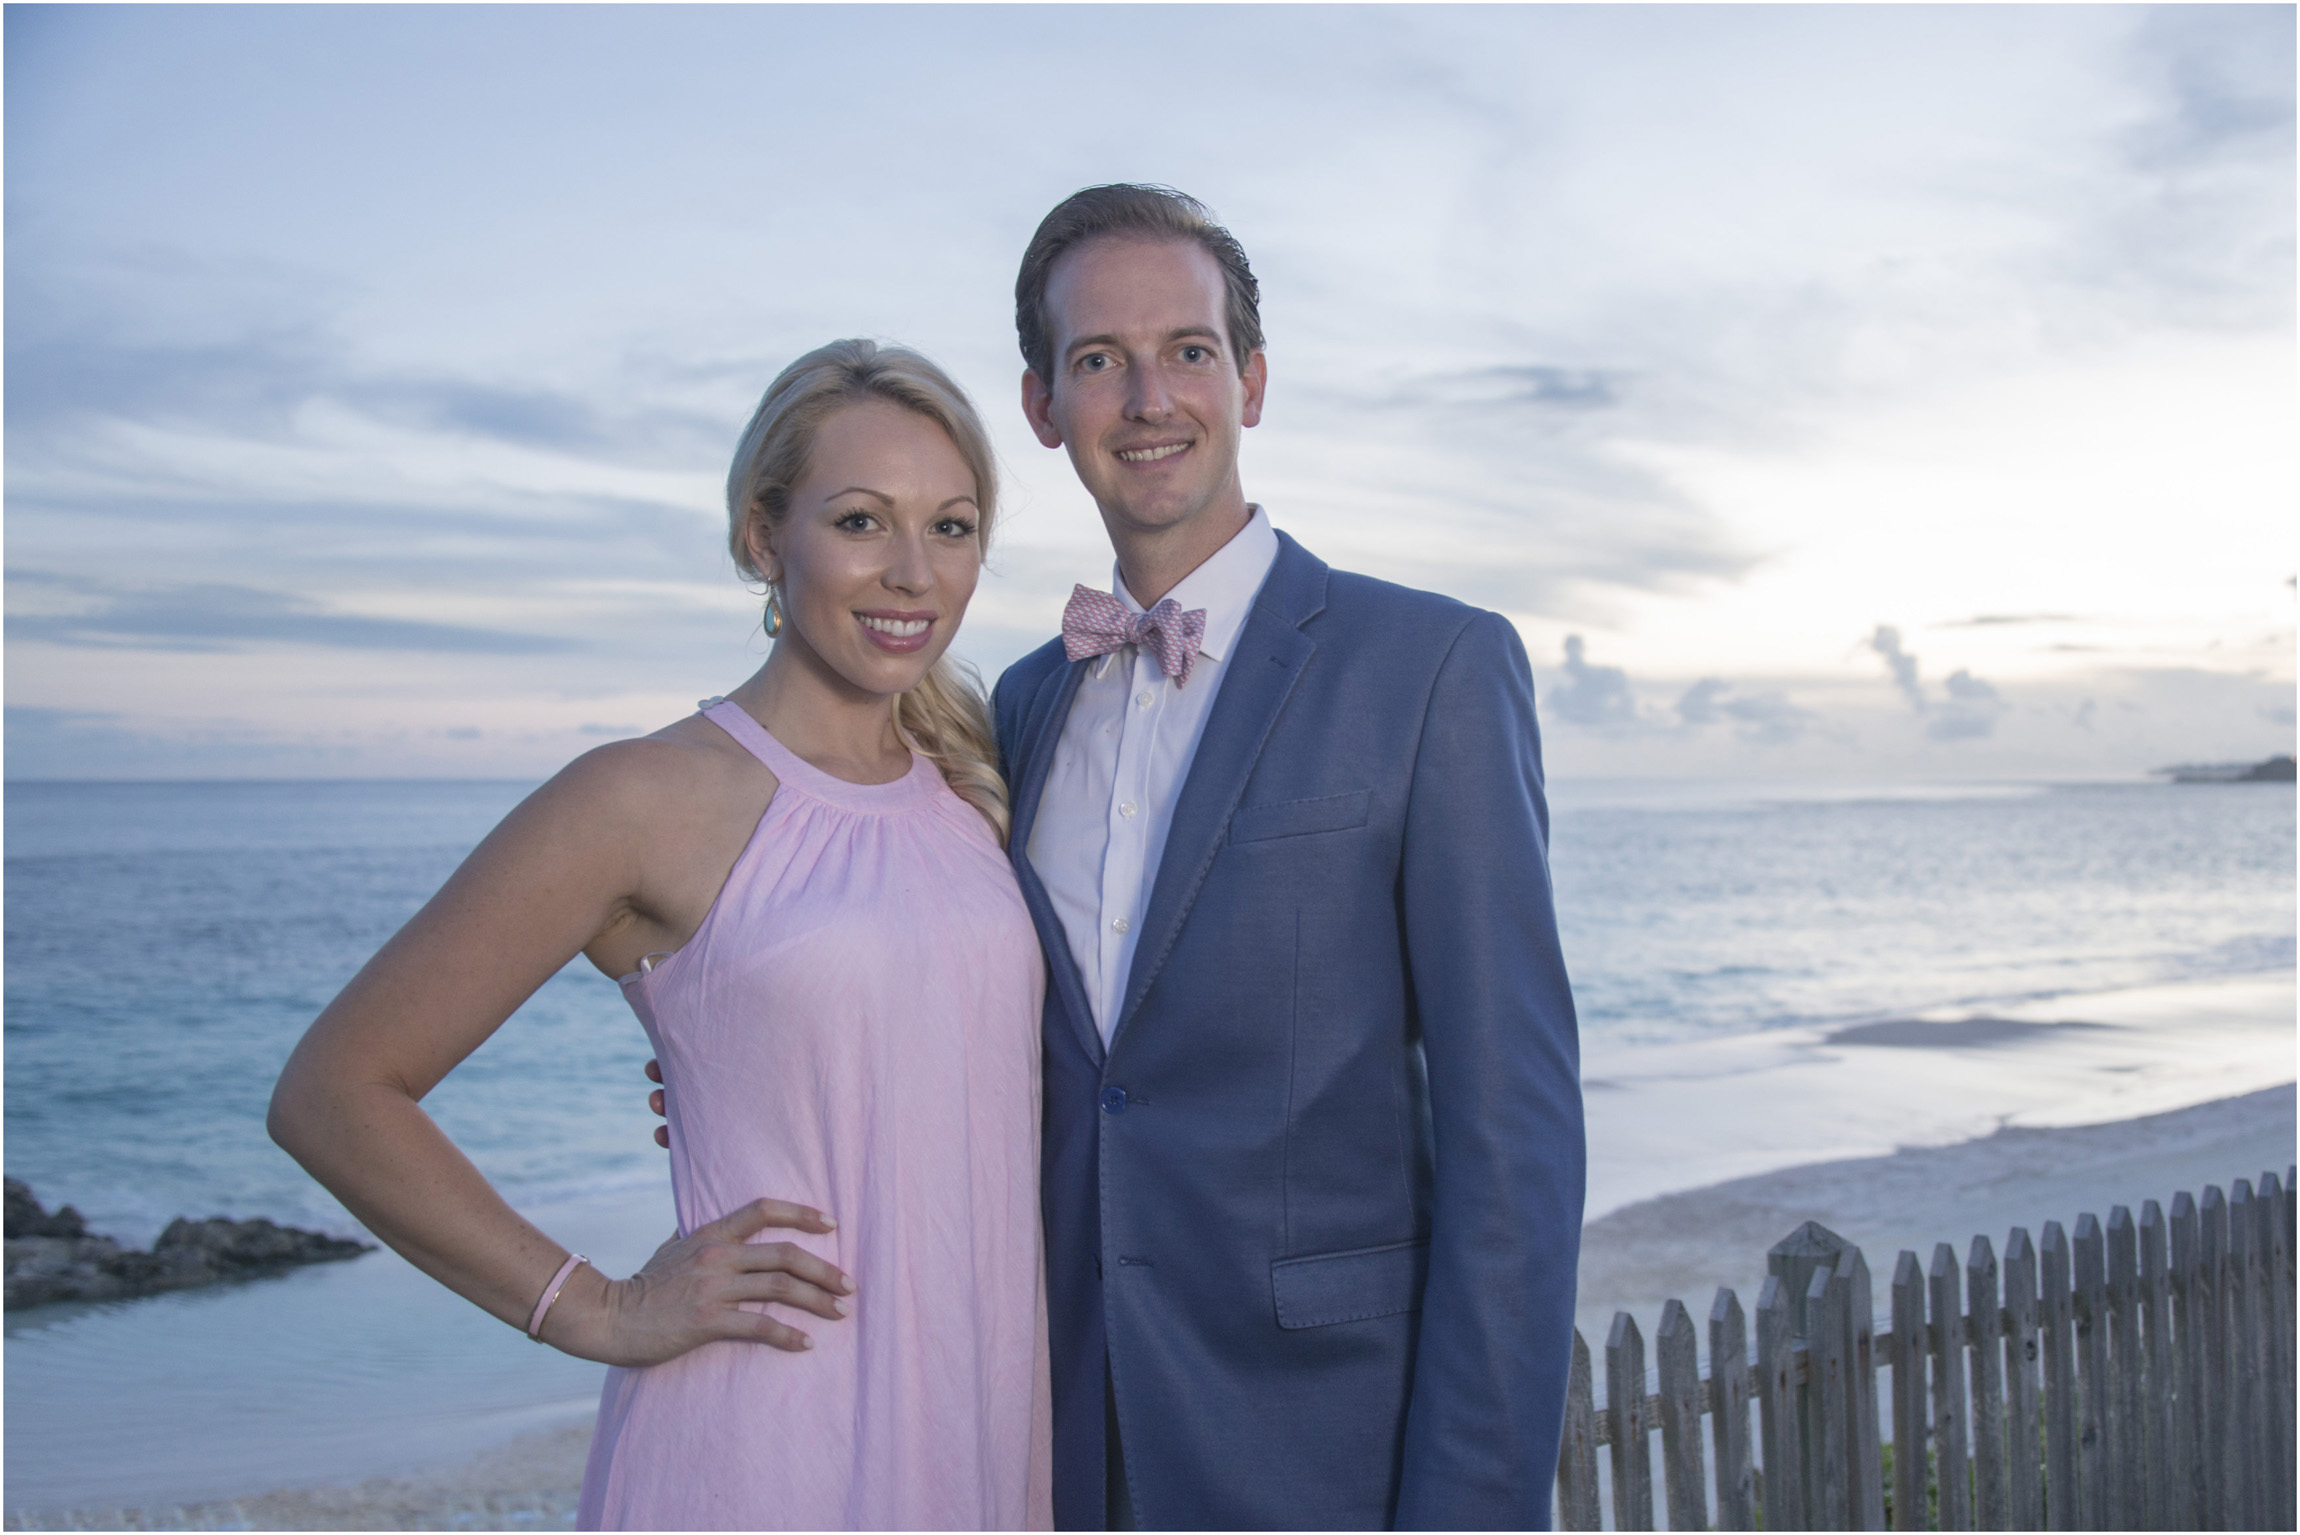 ©Fiander+Foto_Bermuda+Wedding+Photographer_Tuckers+Point_Mid+Ocean_Amy_Tim_054.jpg